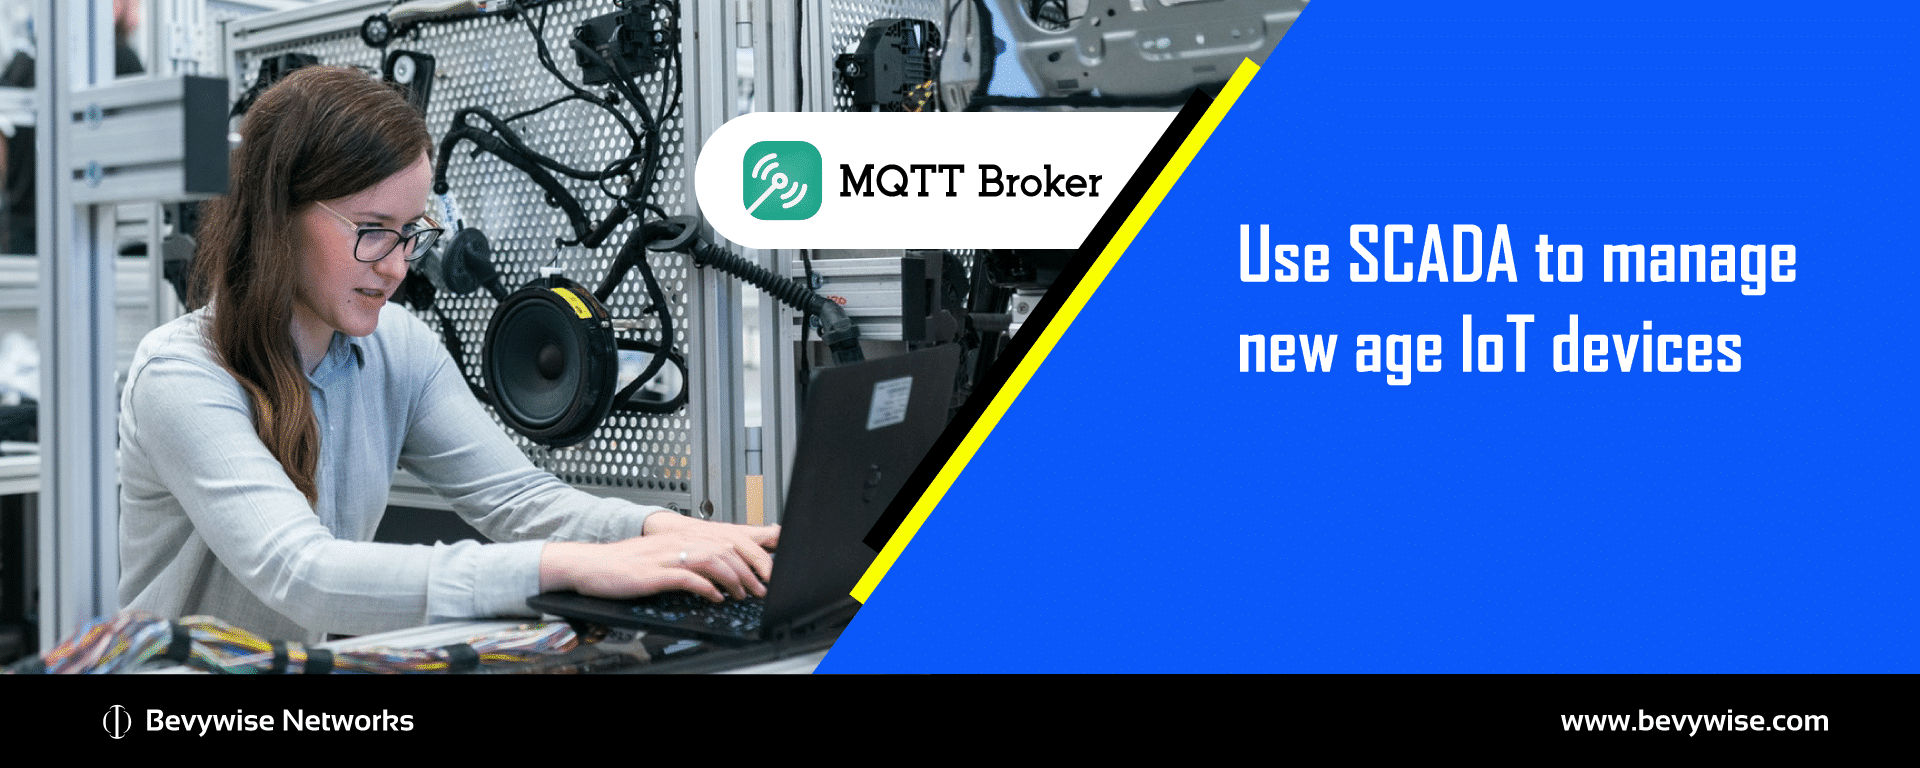 Use SCADA Integration to Connect New Age MQTT Devices